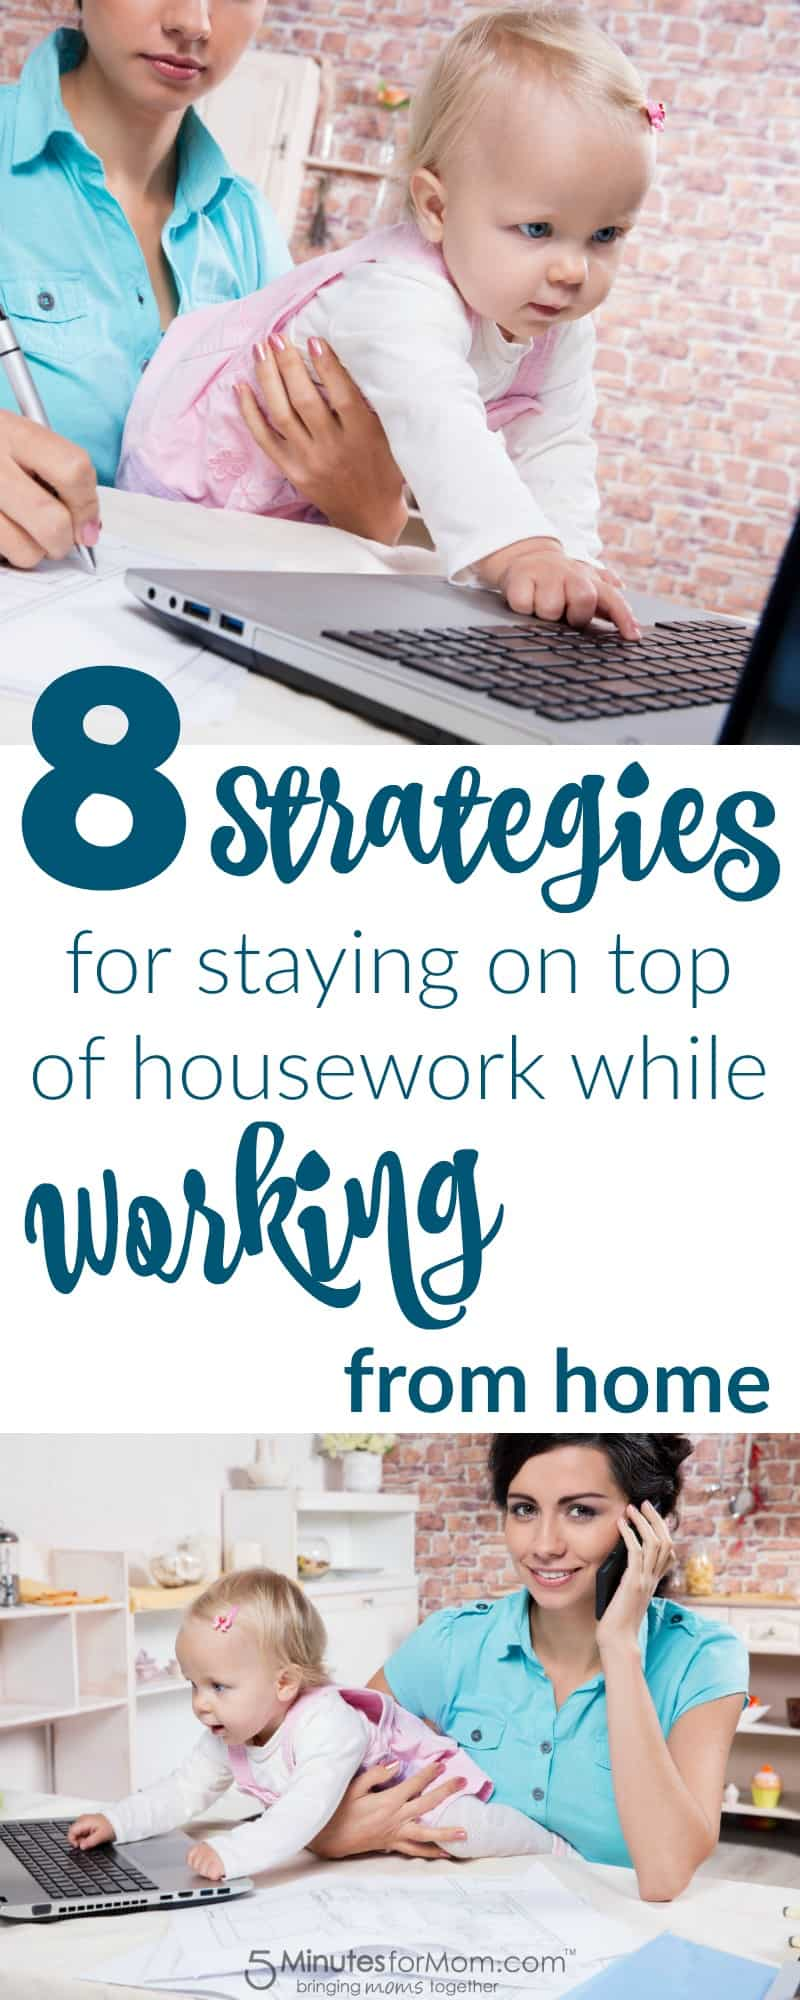 8 Strategies for Staying on Top of Housework While Working from Home